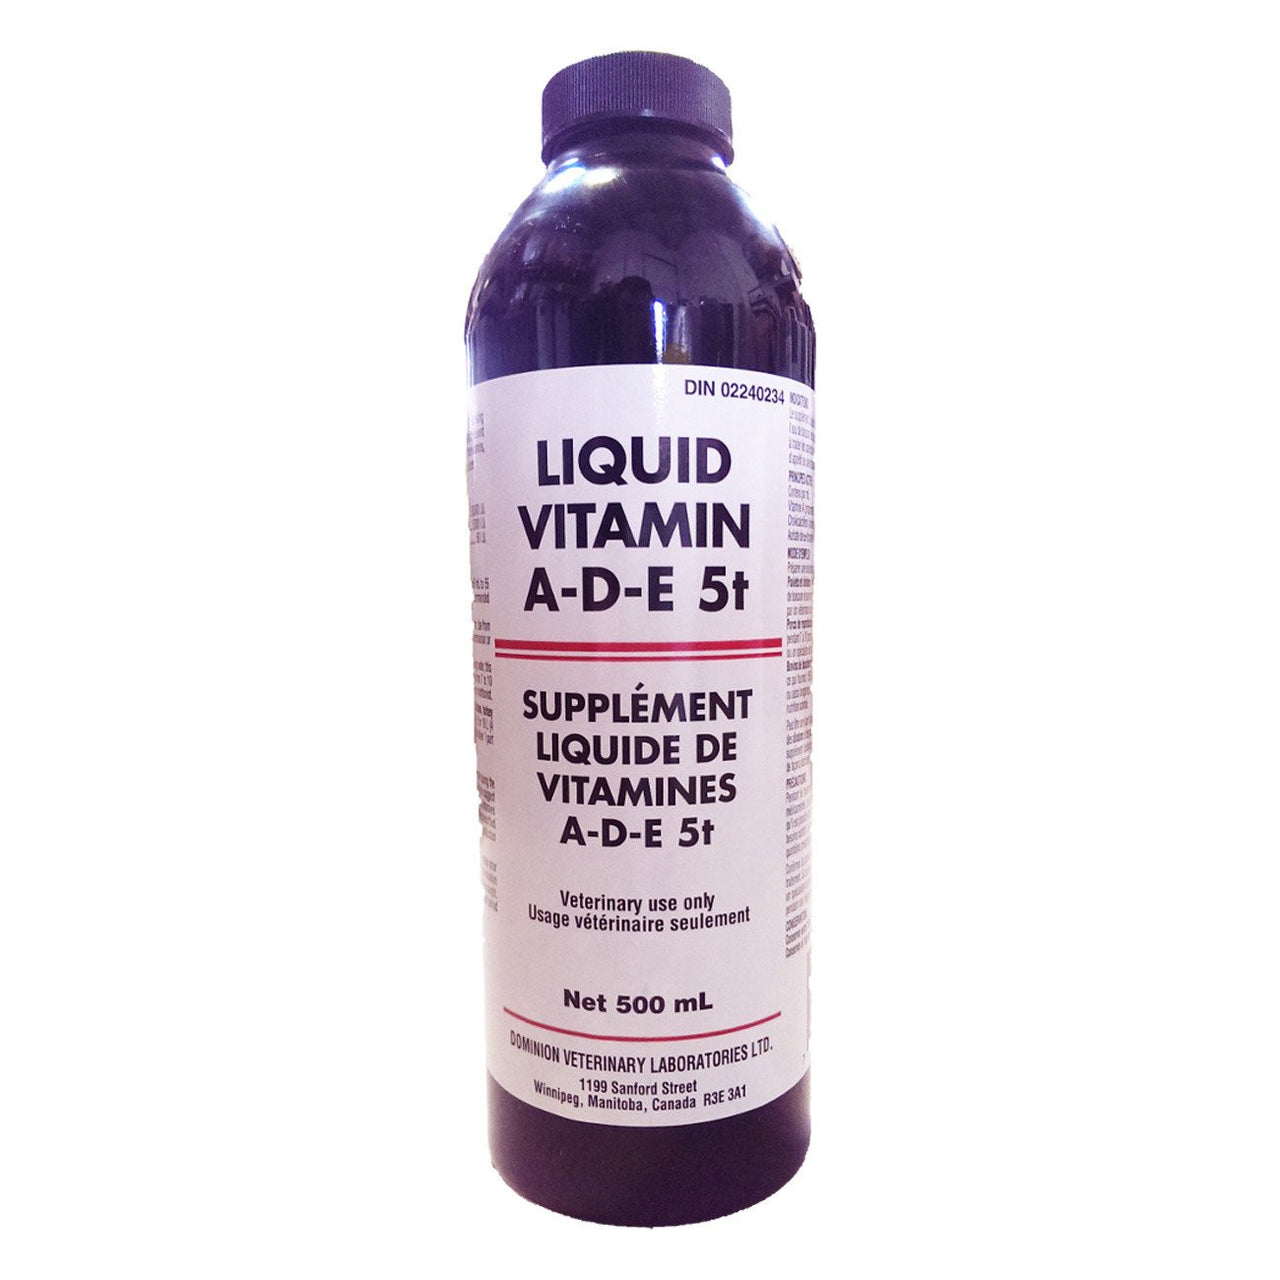 Dvl Liquid Vitamin A-D-E 5+ 500Ml - Pharmaceuticals Dvl - Canada